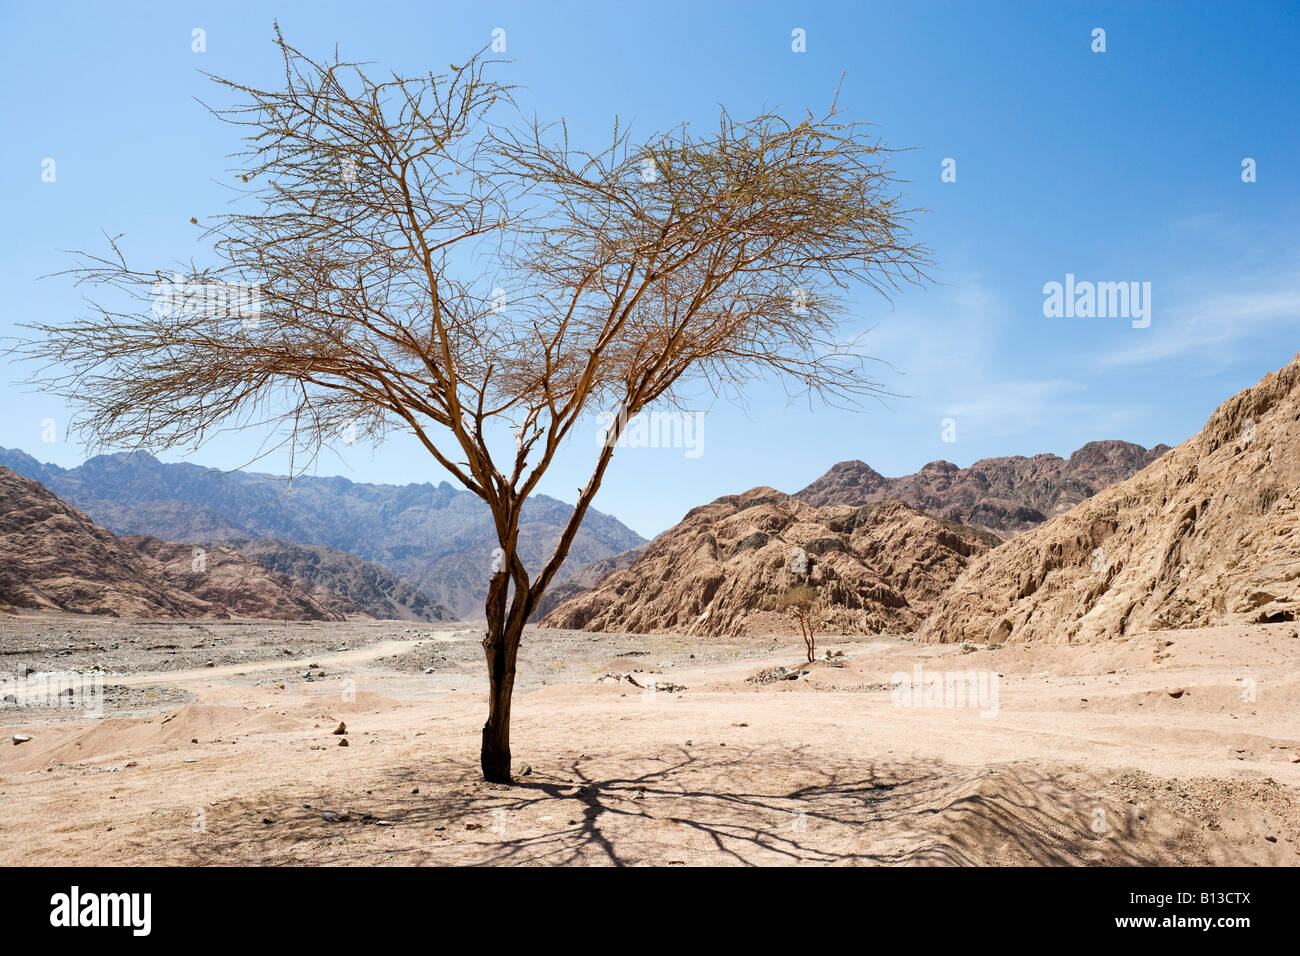 Sinai Desert between Dahab and Sharm el-Sheikh, South Sinai, Egypt - Stock Image